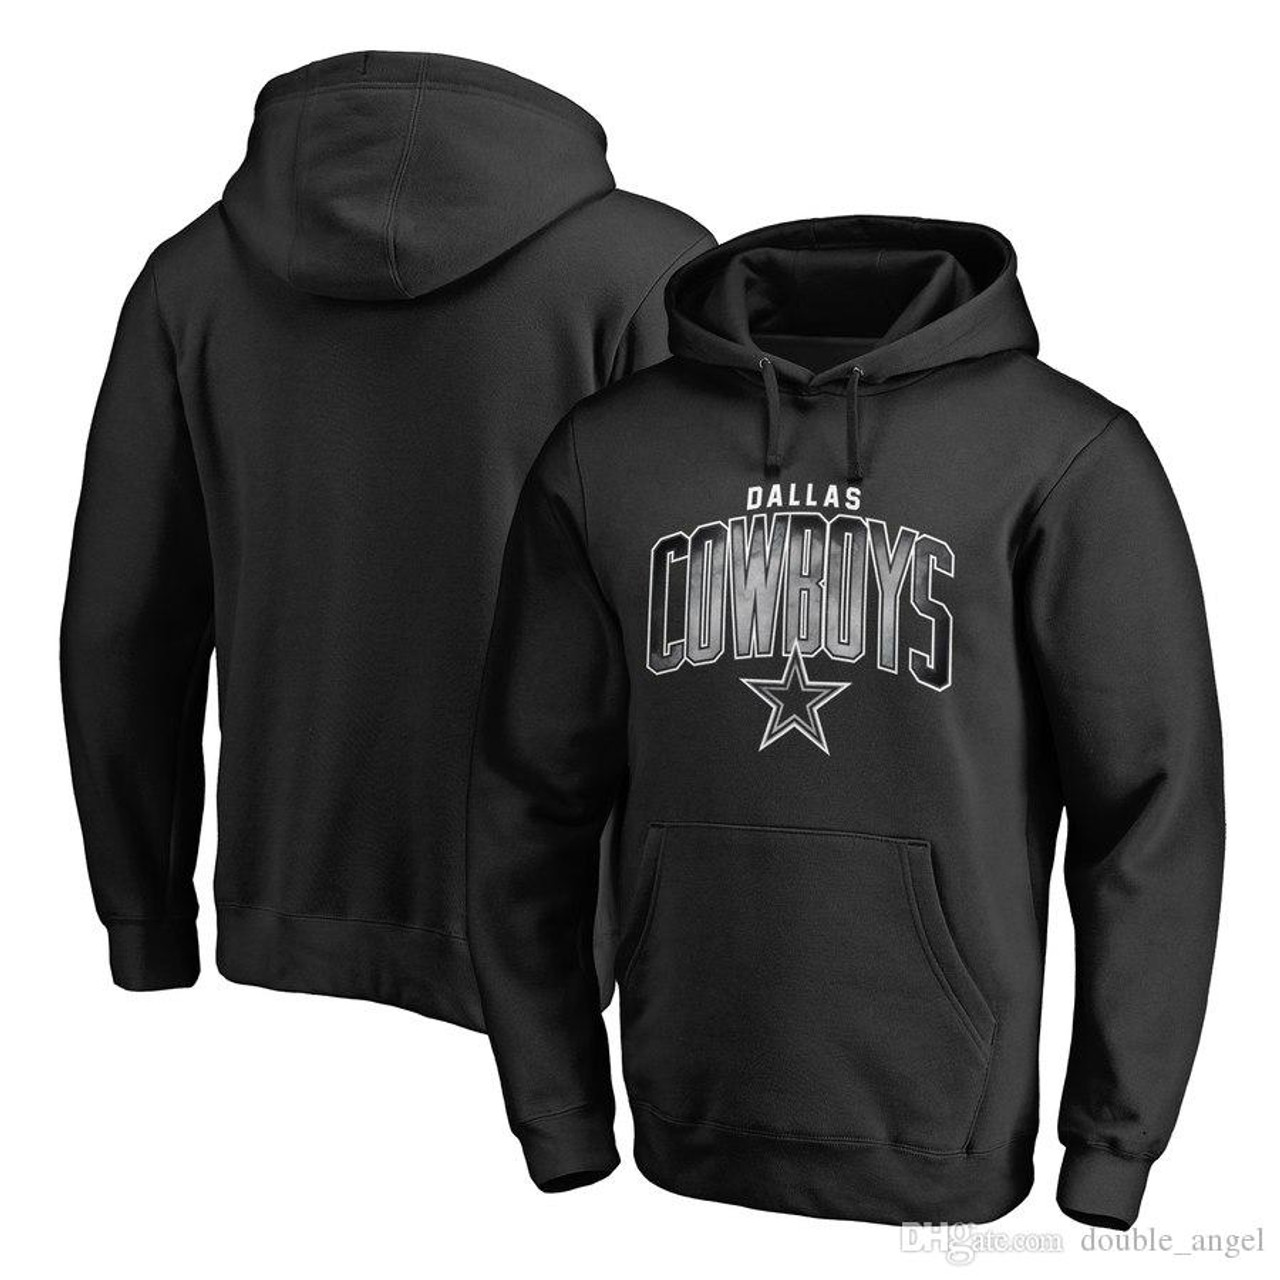 new products 8426b 59a85 **(OFFICIALLY-LICENSED-DALLAS-COWBOYS-PULLOVER-HOODIES/OFFICIAL-COWBOYS-TEAM-LOGOS  & FANACTICS-FOOTBALL-BRANDED/OFFICIAL-PRO-LINE-N.F.L.COWBOYS-TEAM-P...